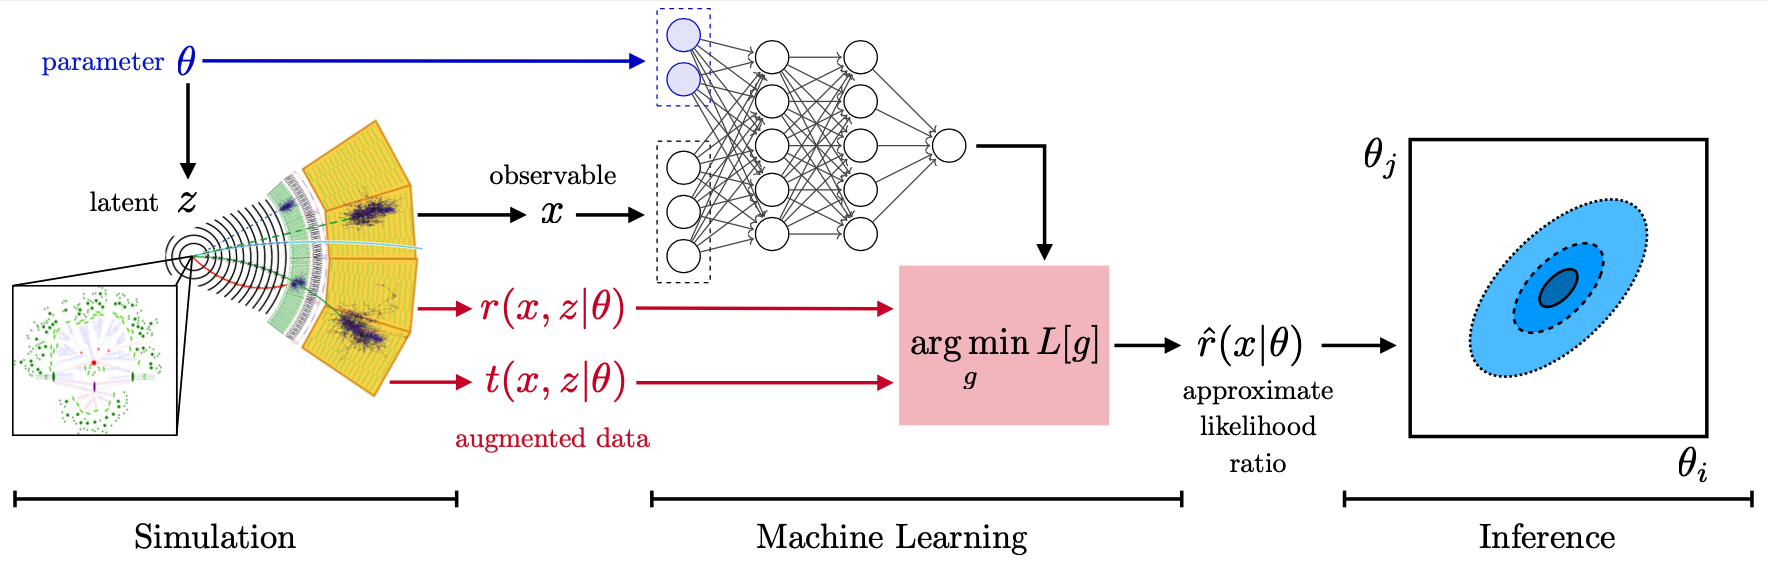 Schematics of the simulation and inference workflow